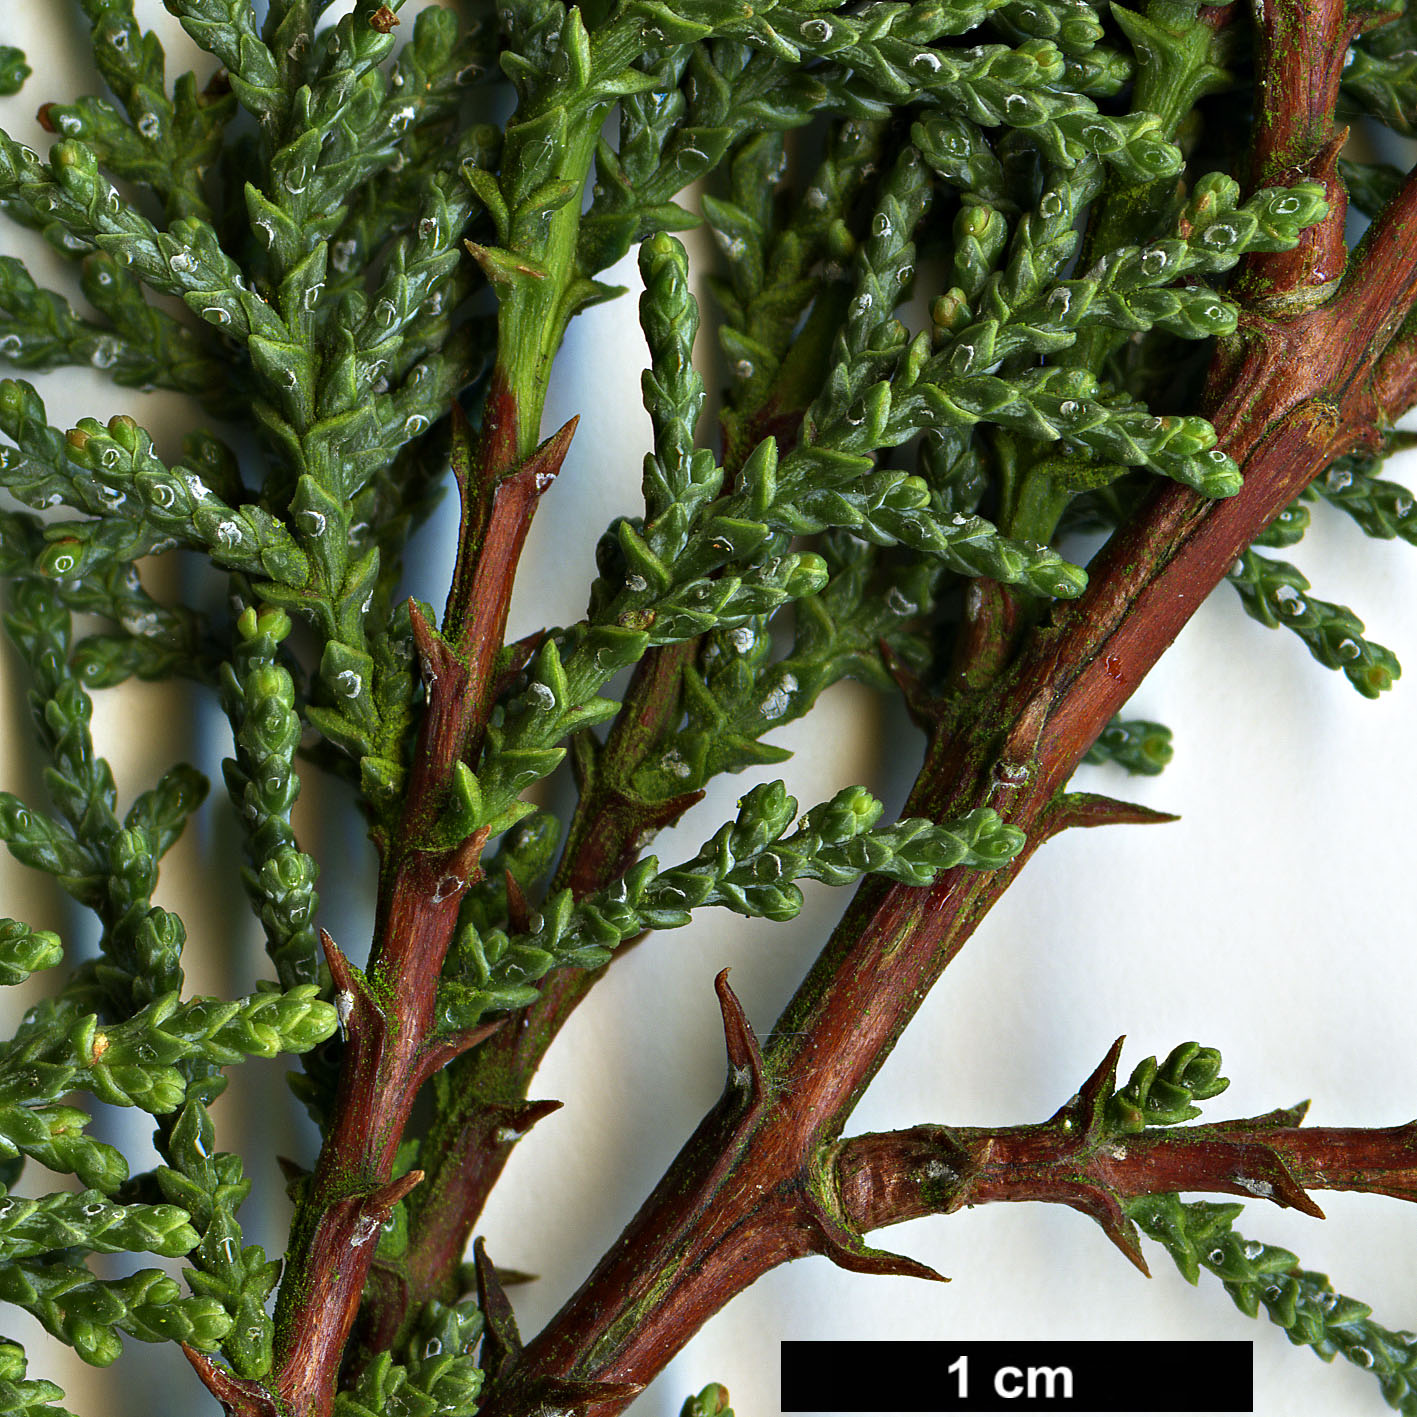 High resolution image: Family: Cupressaceae - Genus: Cupressus - Taxon: macnabiana